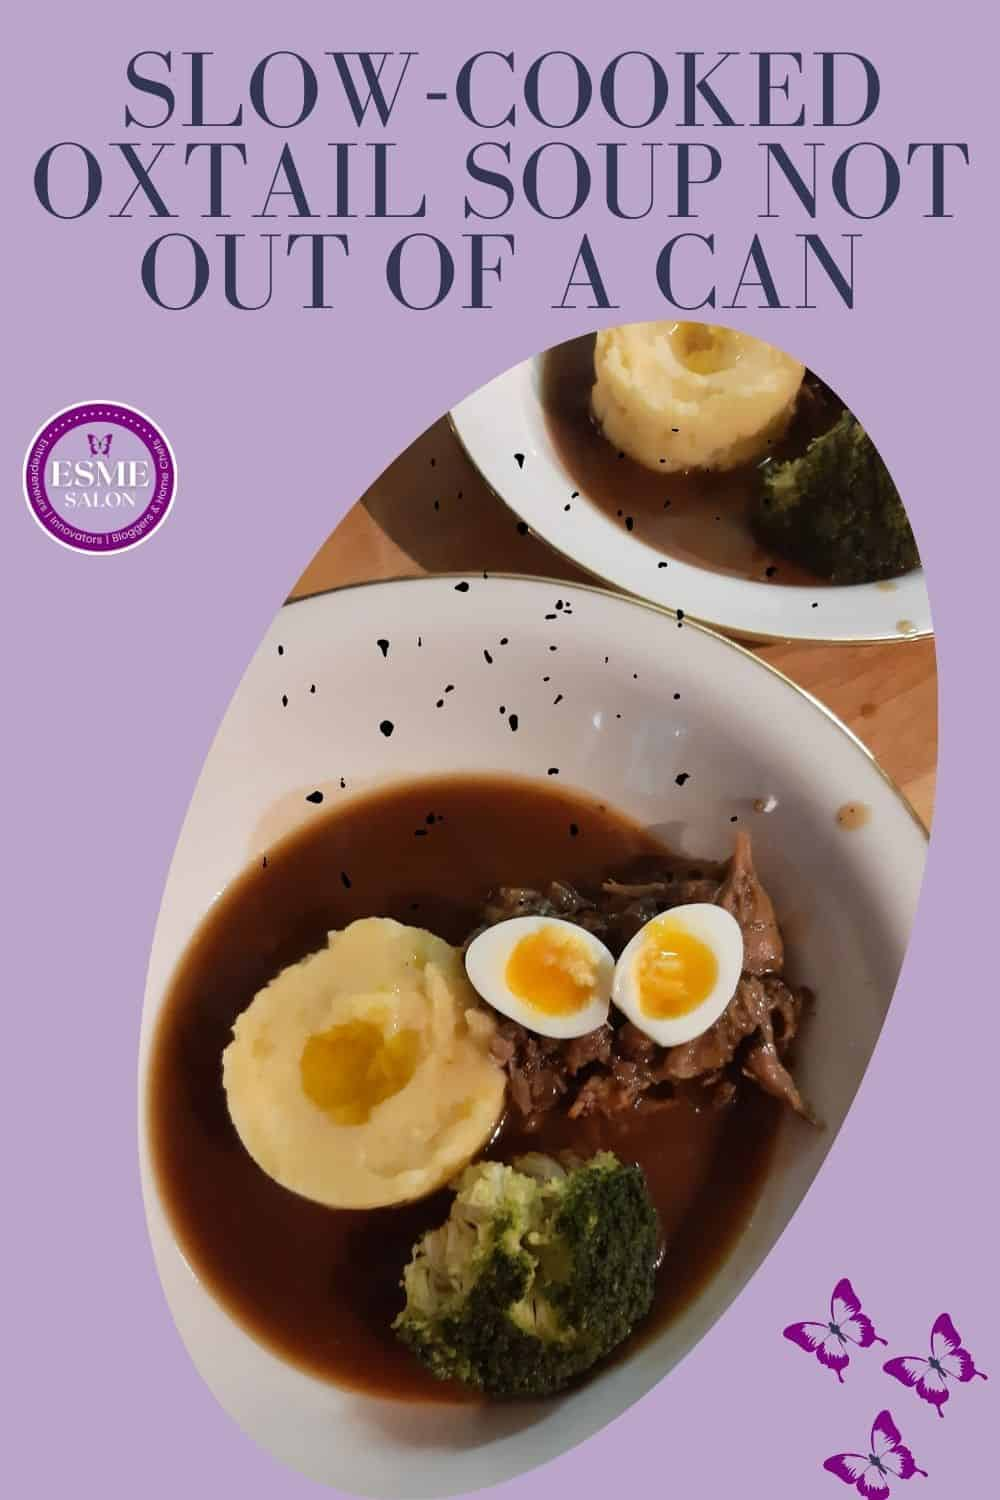 A bowl of Oxtail soup with mash and quails eggs